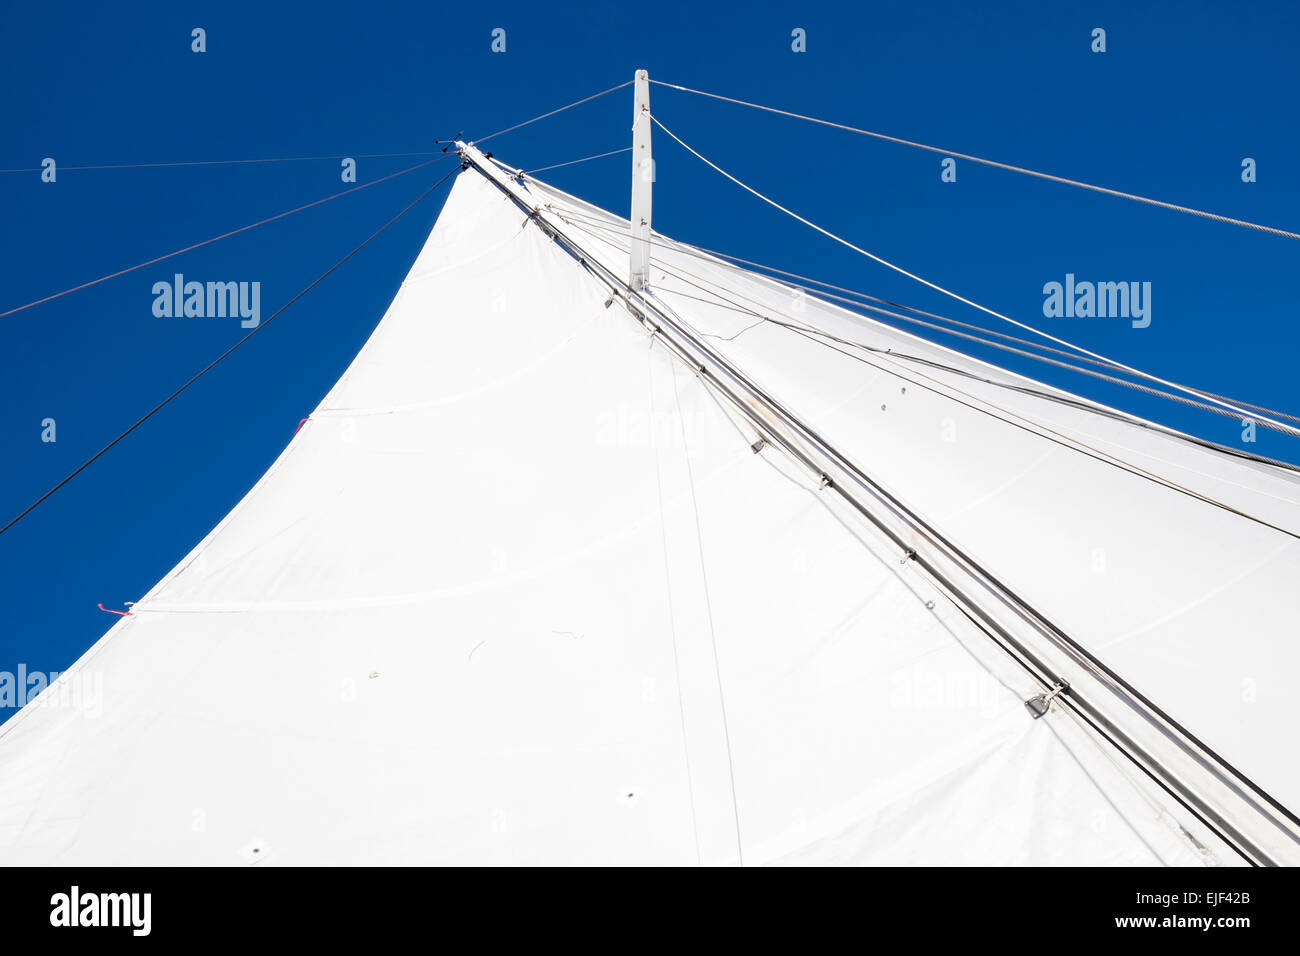 looking-up-the-mast-with-sails-out-on-th